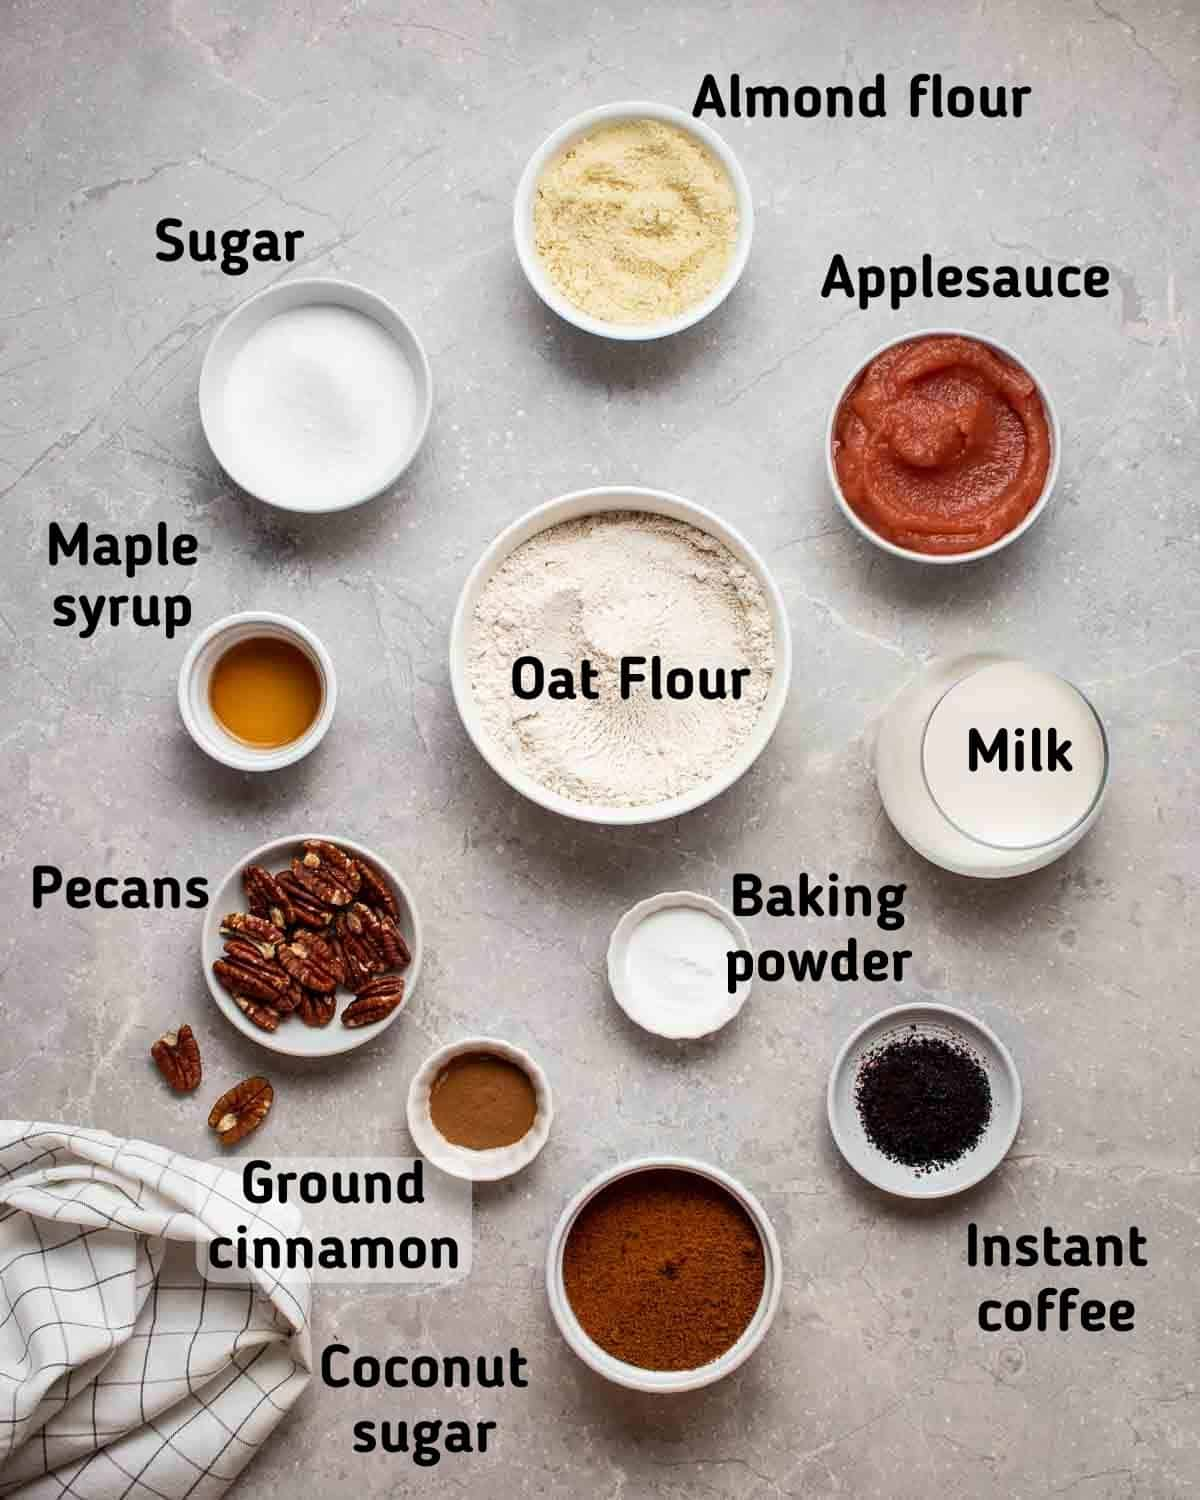 Ingredients needed like oat flour, applesauce, coconut sugar, milk, coffee granules and others on grey background.